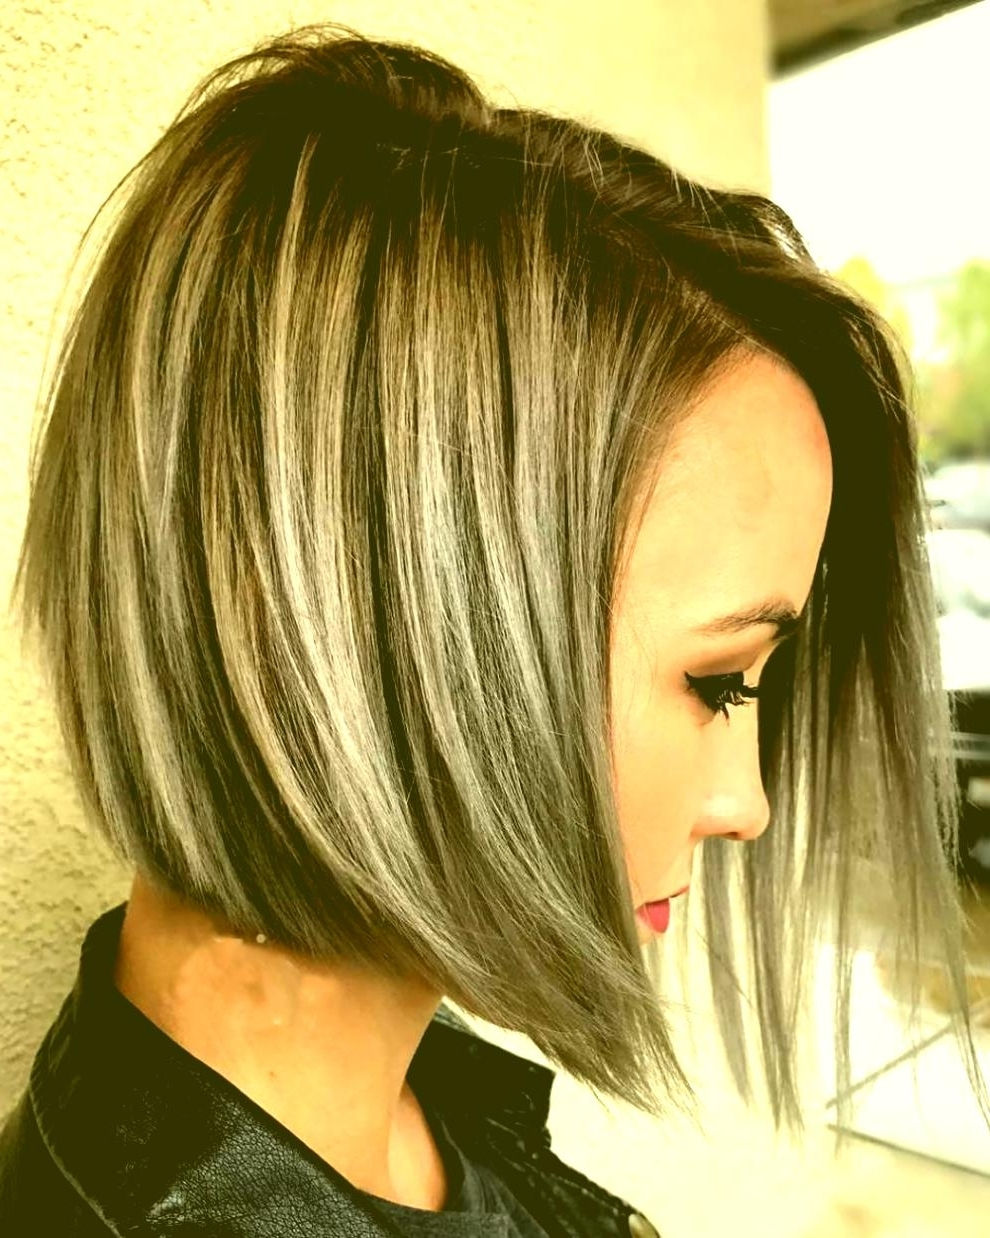 Long Bob Hairstyles With Red Highlights Asymmetrical Short Haircuts Inside Trendy Balayage Pixie Hairstyles With Tiered Layers (View 5 of 20)